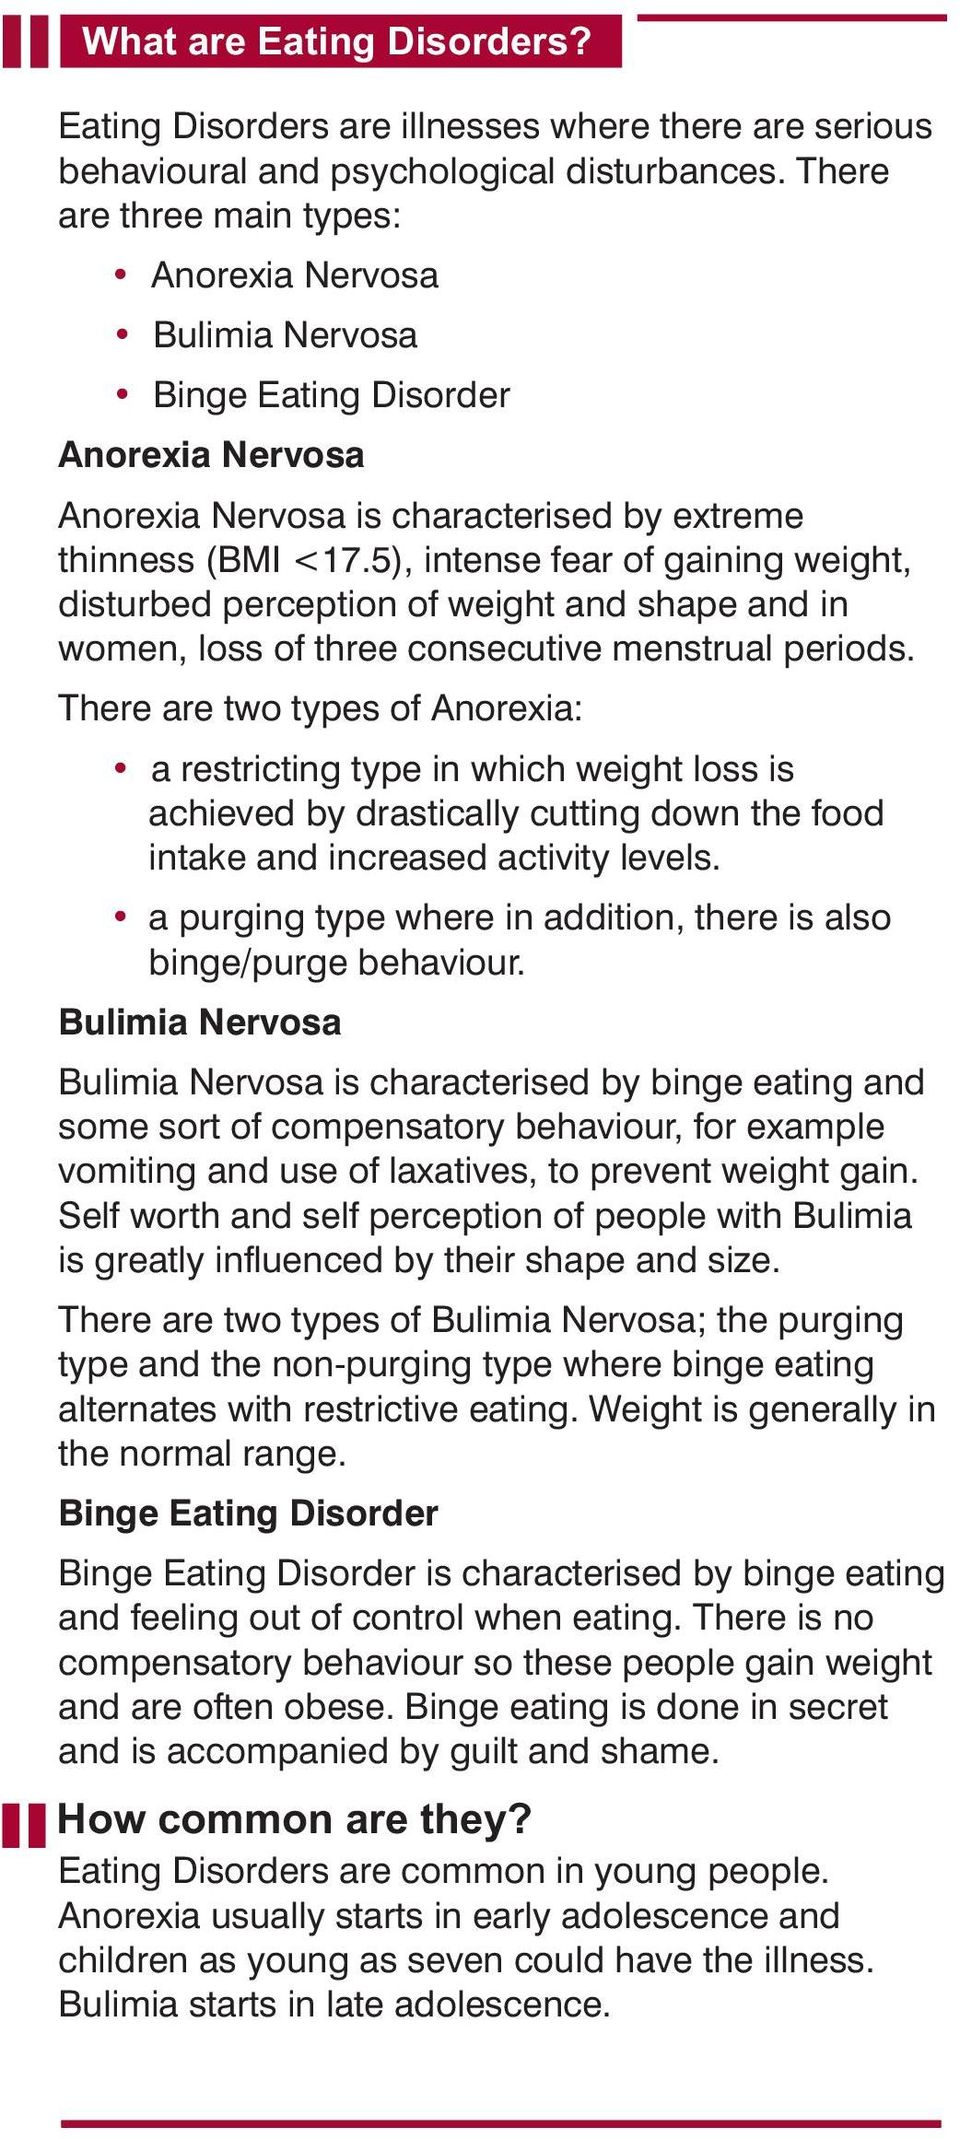 5), intense fear of gaining weight, disturbed perception of weight and shape and in women, loss of three consecutive menstrual periods.